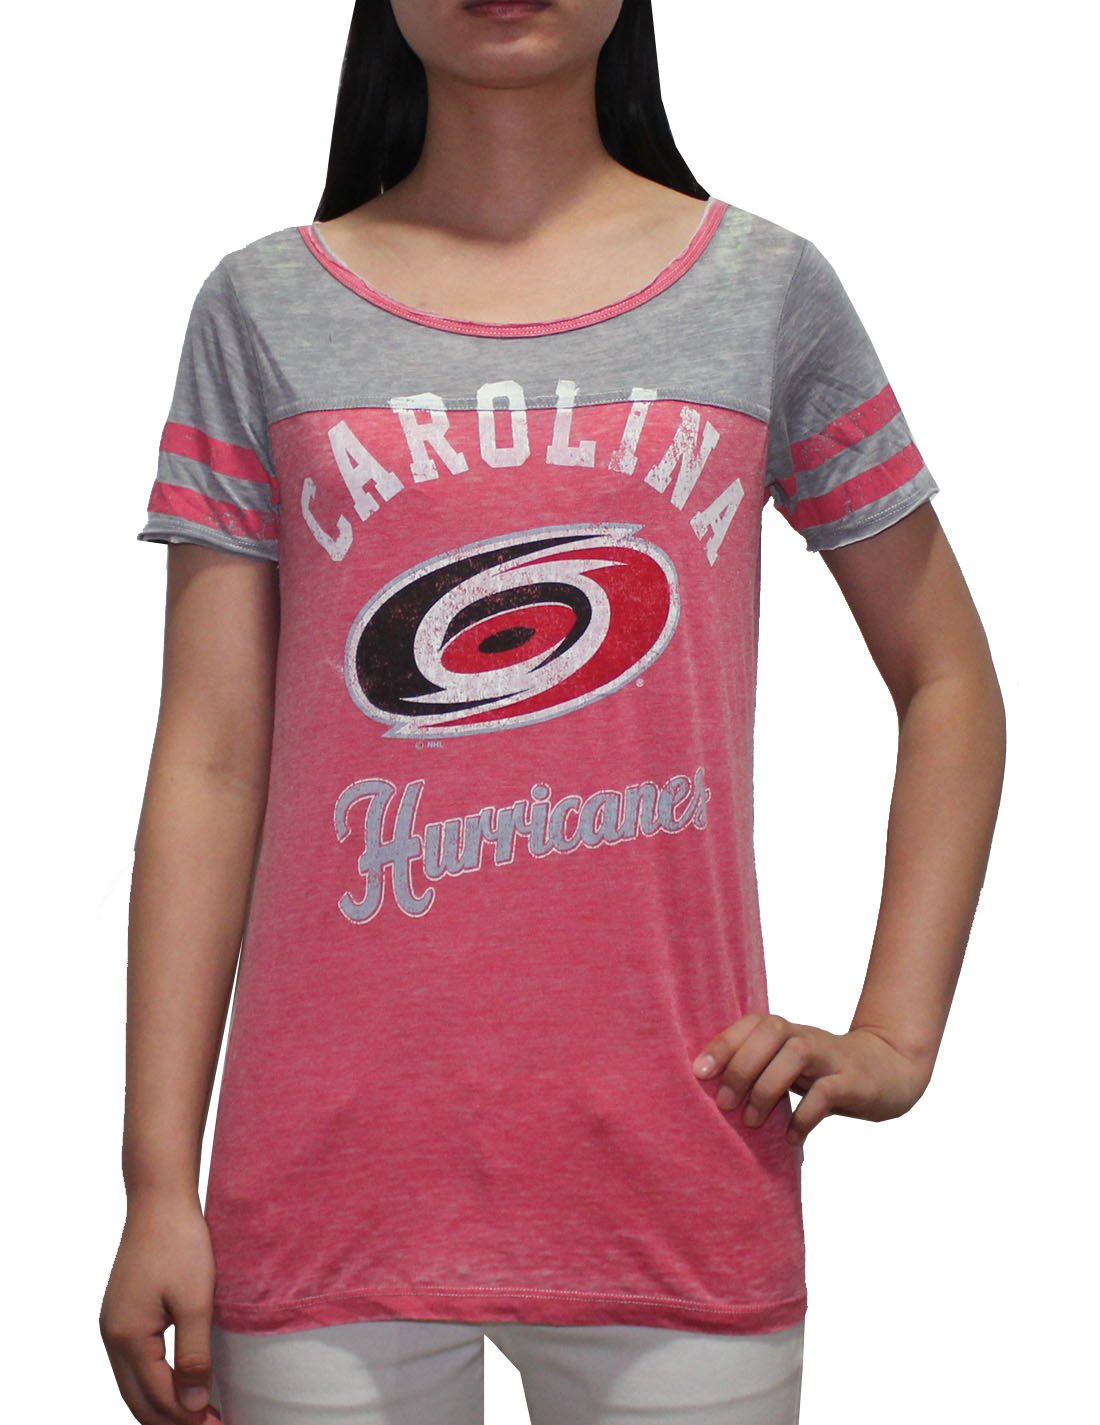 NHL Carolina Hurricanes Womens Crew-Neck Short Sleeve T Shirt (Vintage Look)